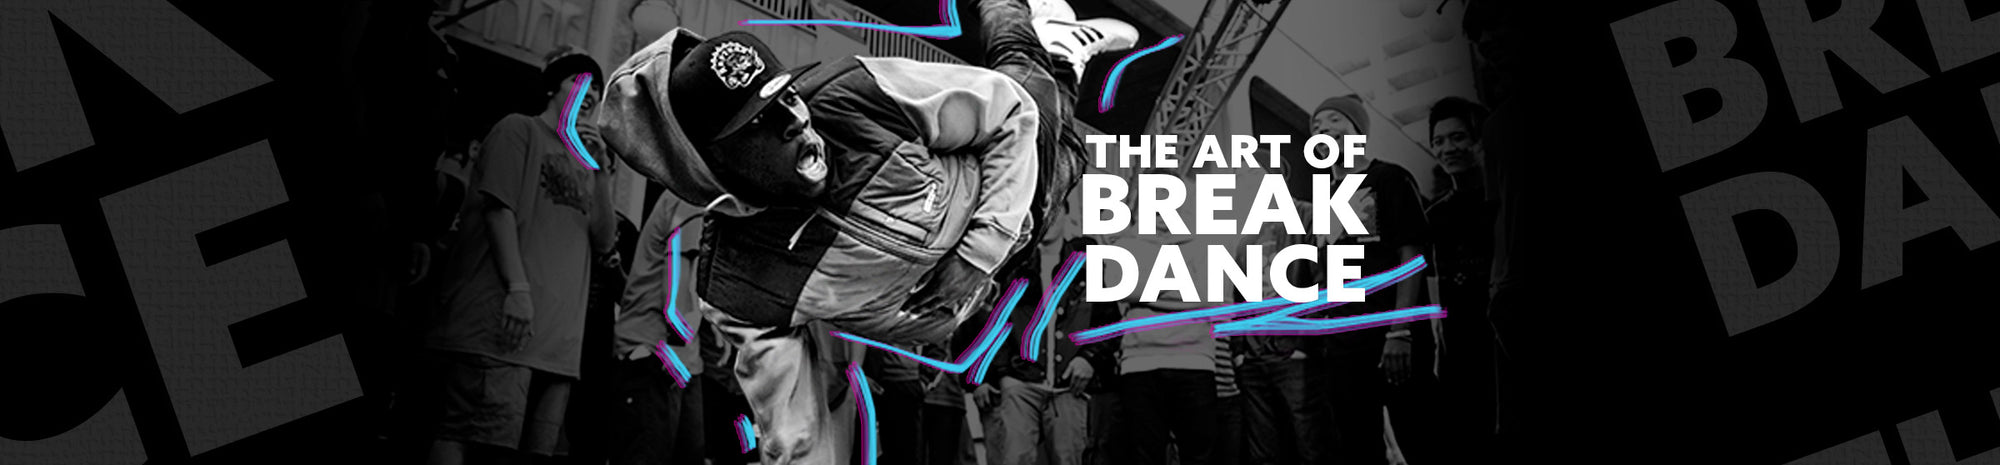 B-boying: l'arte di fare breakdance